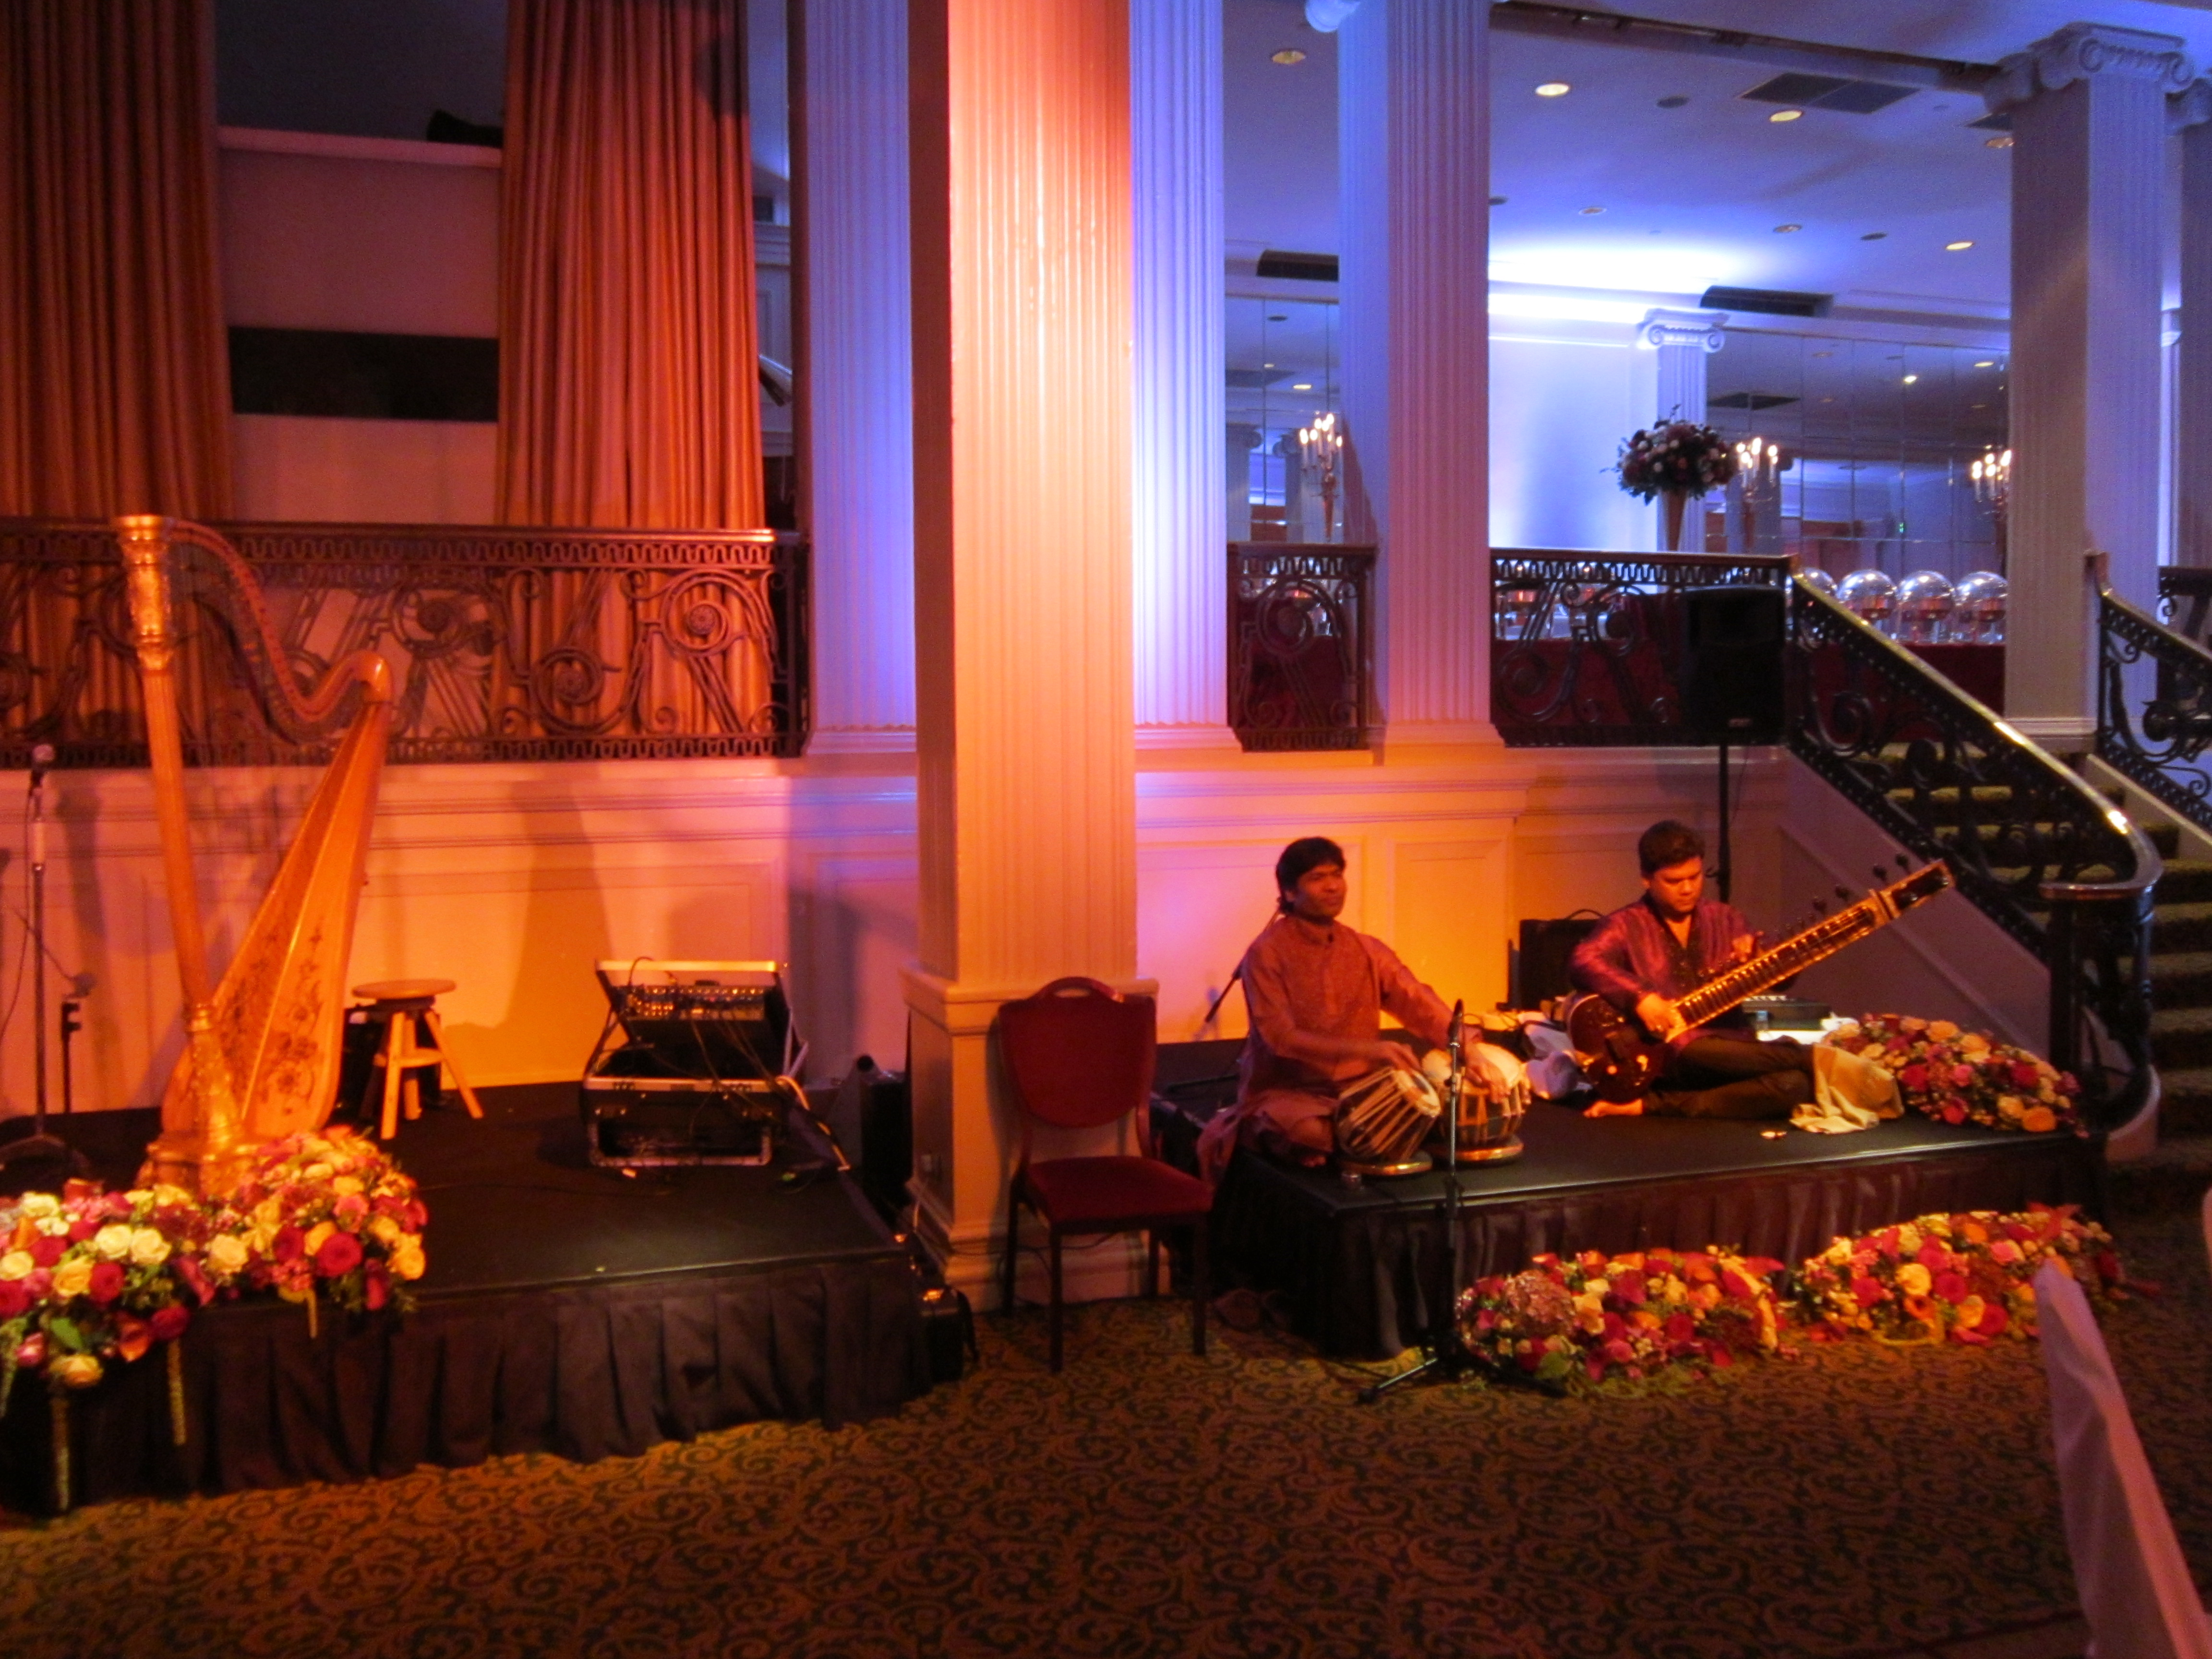 Set up with Indian band for a function at The Grosvenor Hotel